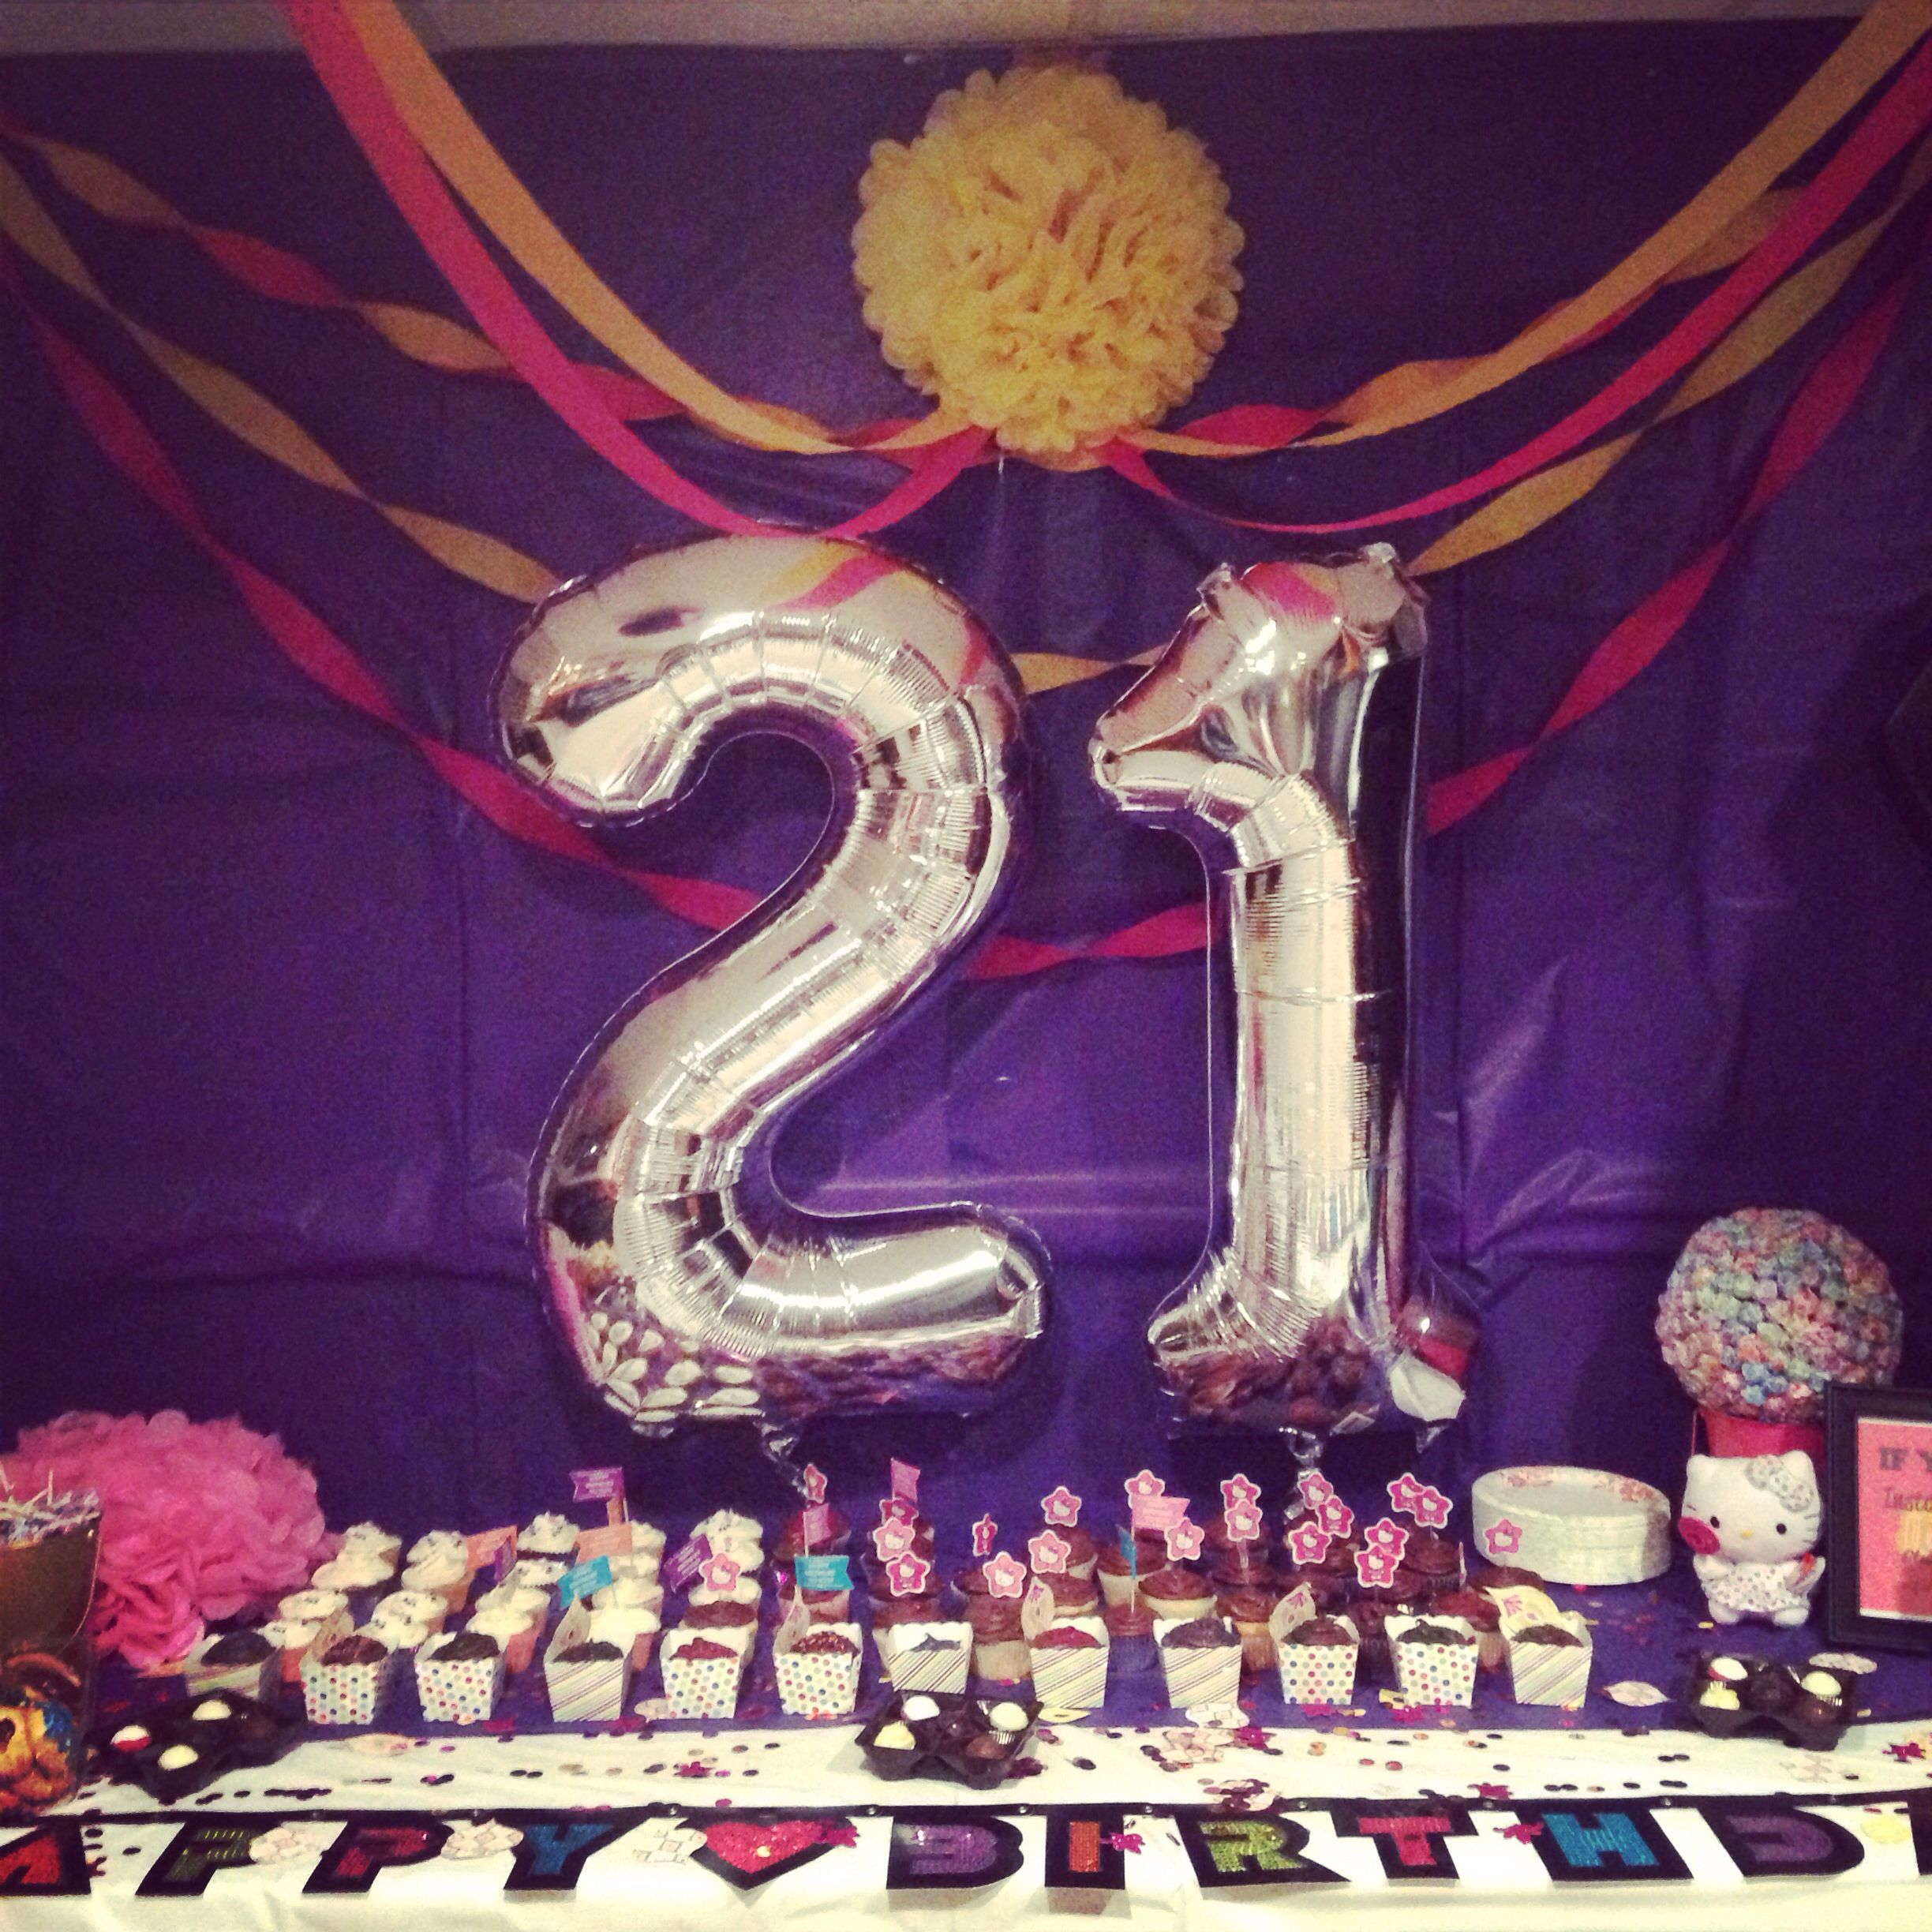 21 Best Youmu Konpaku Images On Pinterest: The 25+ Best 21st Birthday Decorations Ideas On Pinterest